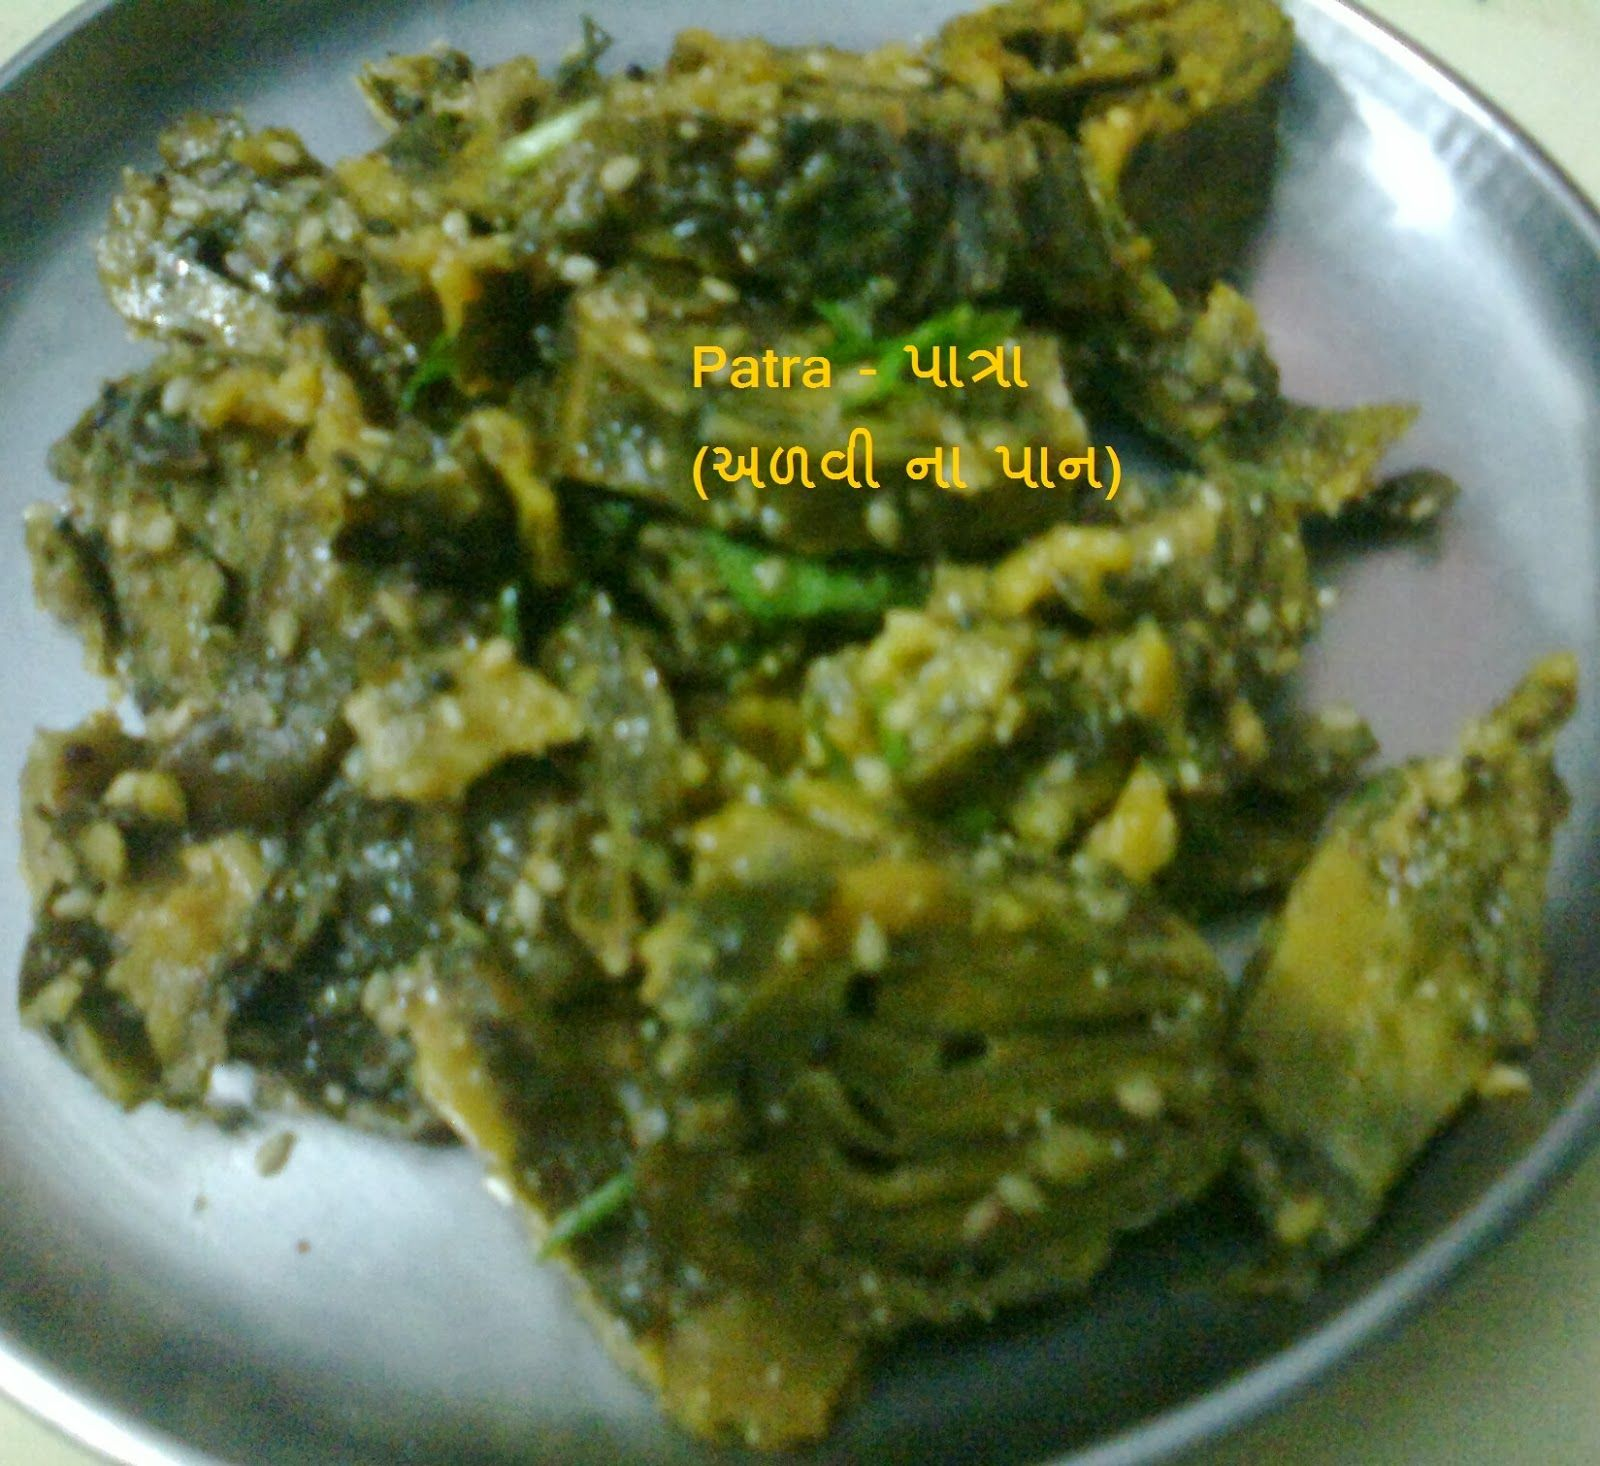 Advi na pan patra recipe in gujarati language mitarecipe advi na pan patra recipe in gujarati language forumfinder Image collections